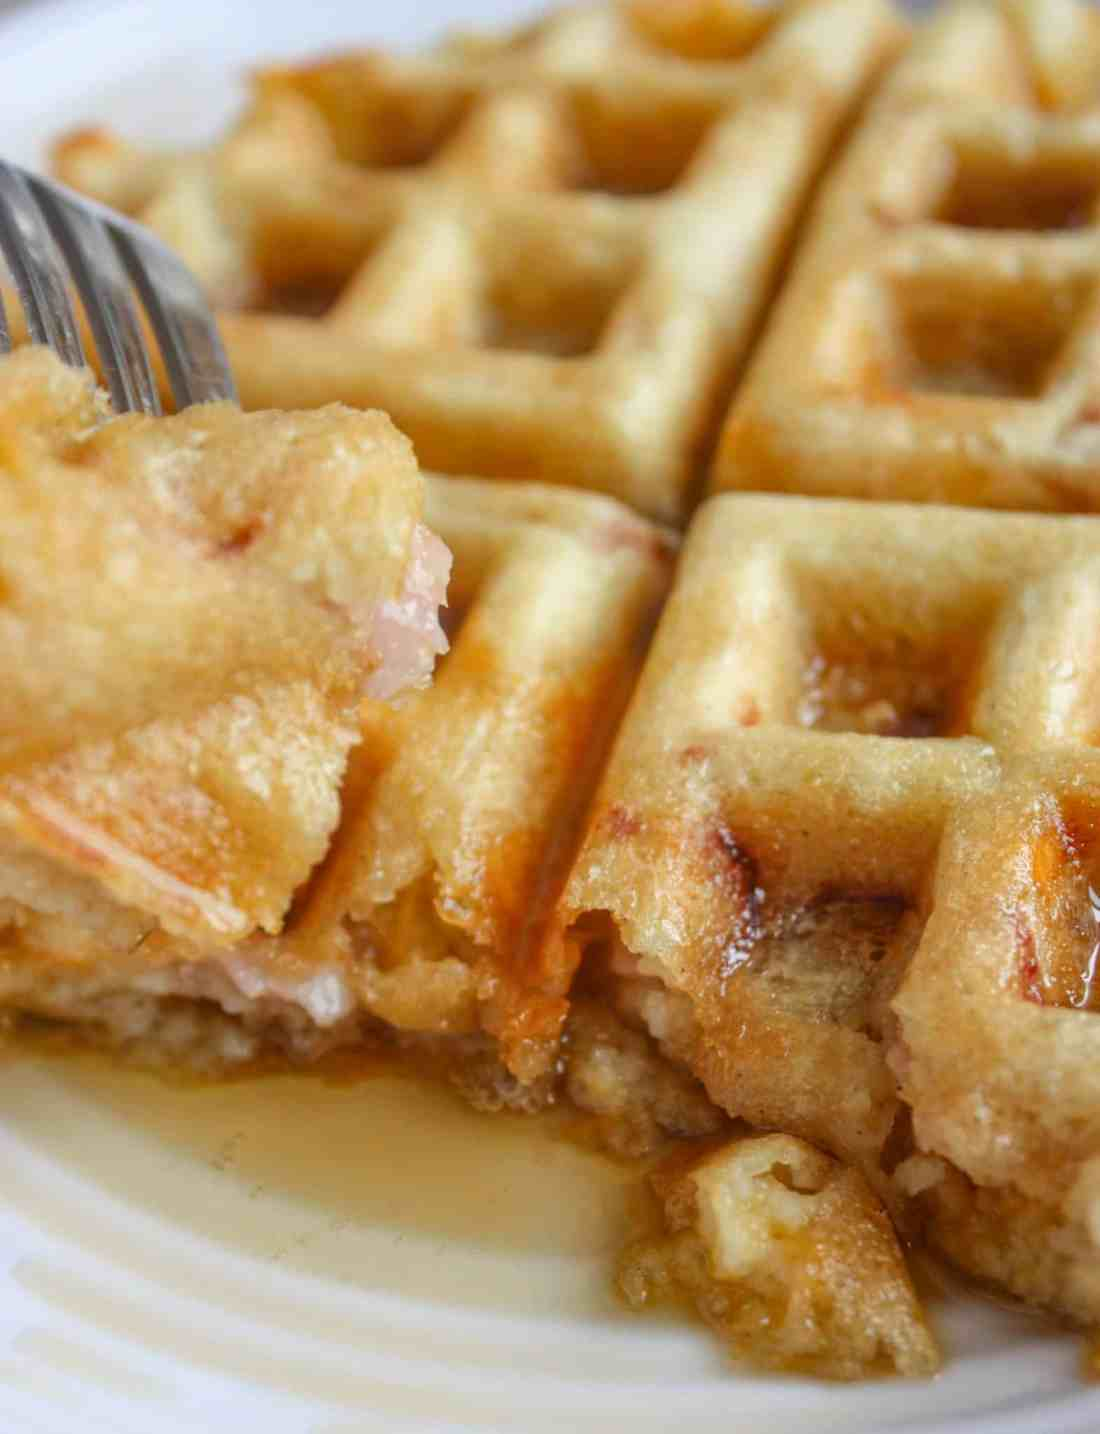 Waffles of any kind are a nice breakfast or brunch treat for young and old alike.  These gluten free Ham and Cheese Waffles provide a nice contrast of flavours with old cheddar cheese paired with pure maple syrup.